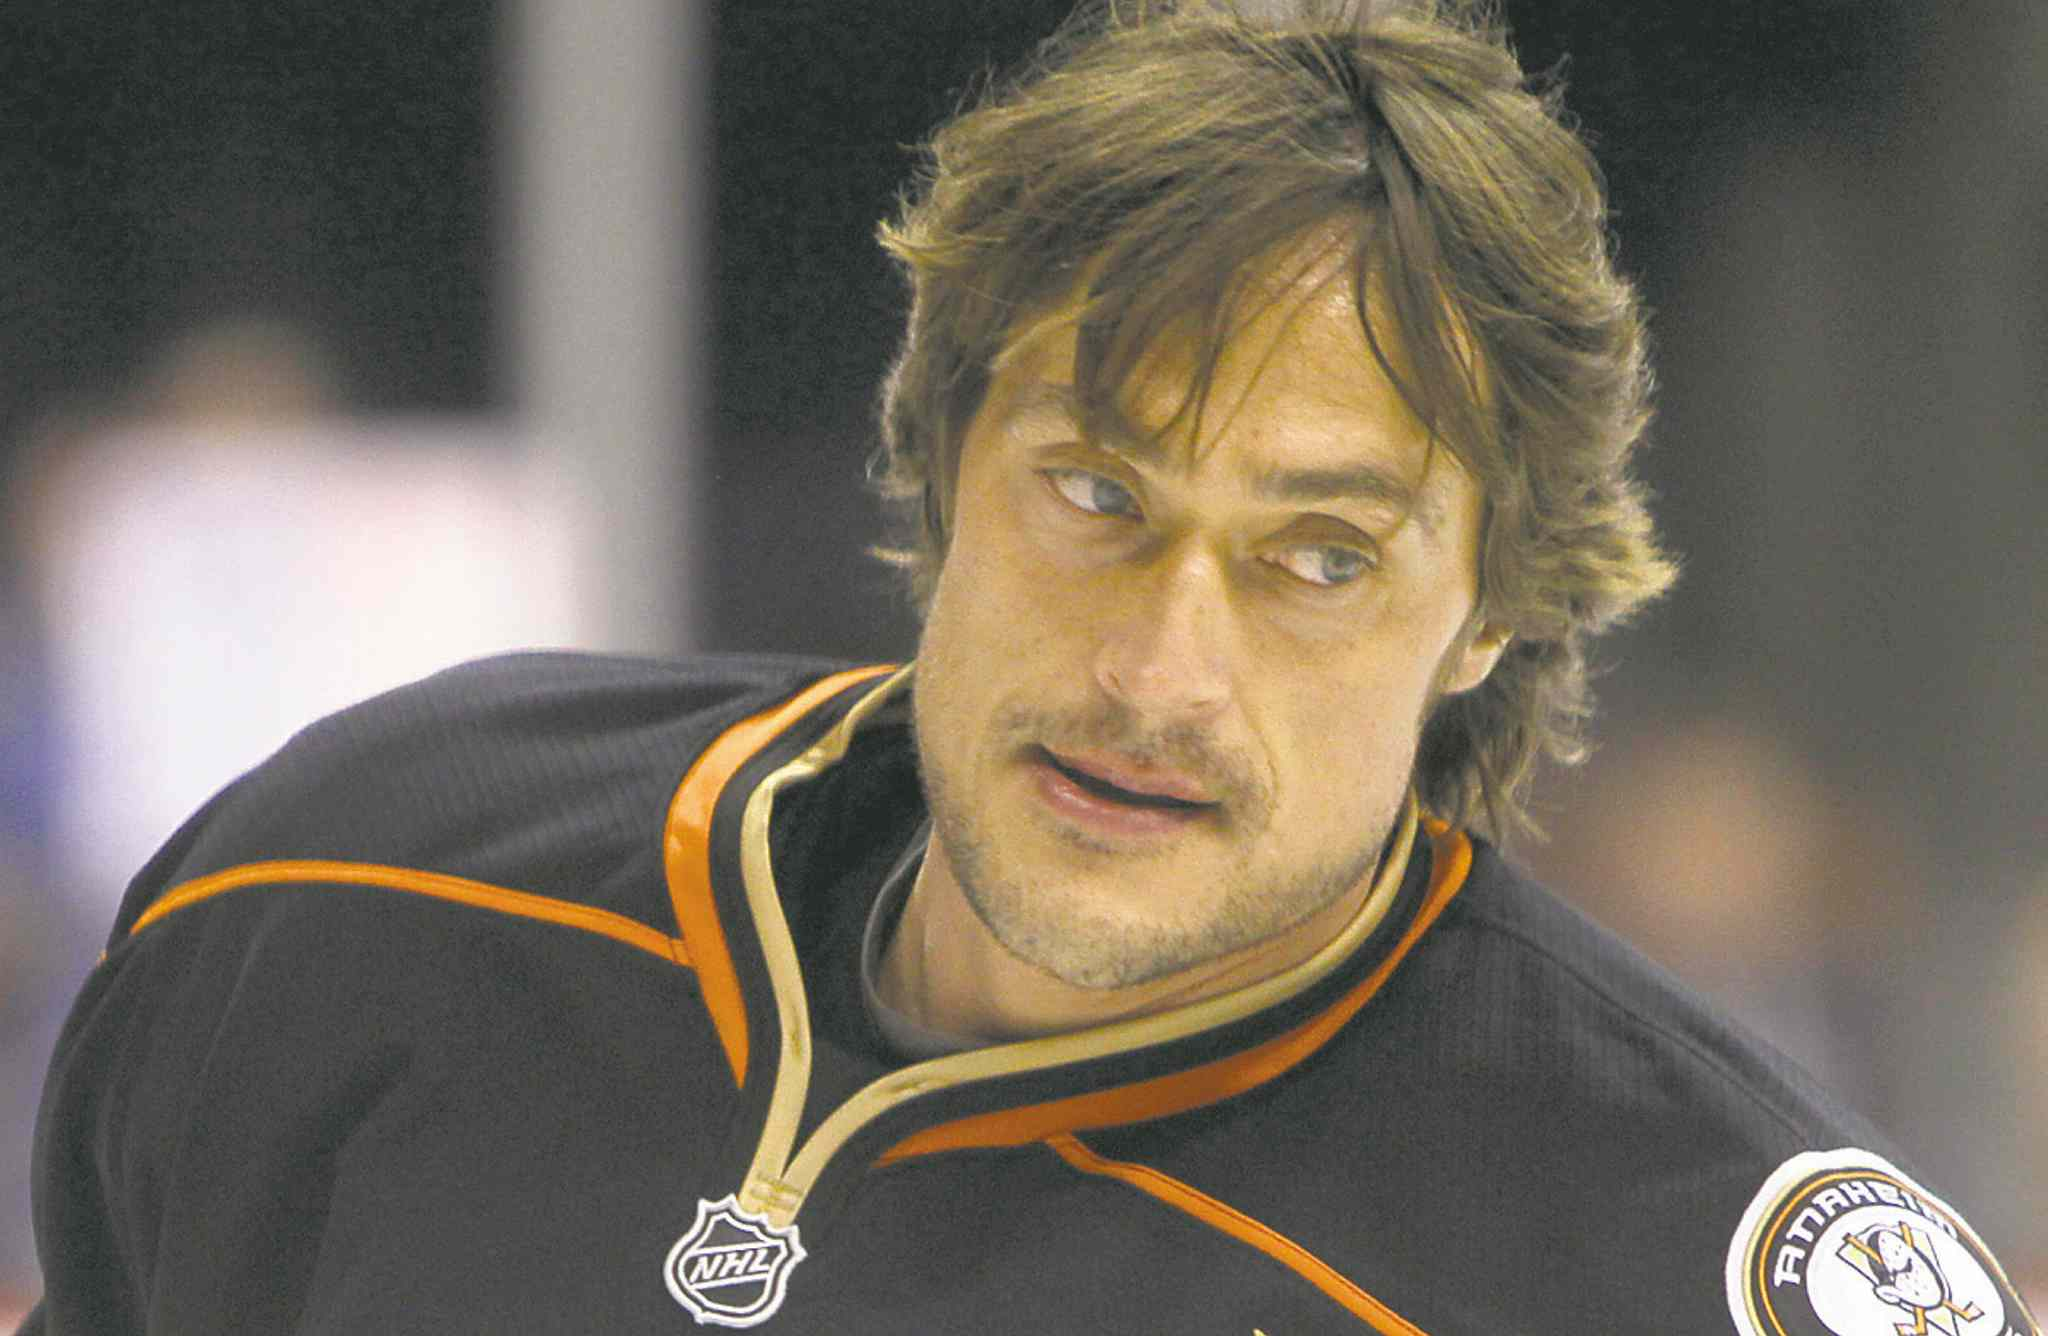 Anaheim Ducks' Teemu Selanne (8) skates during warm up as they prepare to face off against the Winnipeg Jets' at MTS Centre, December 17, 2011.